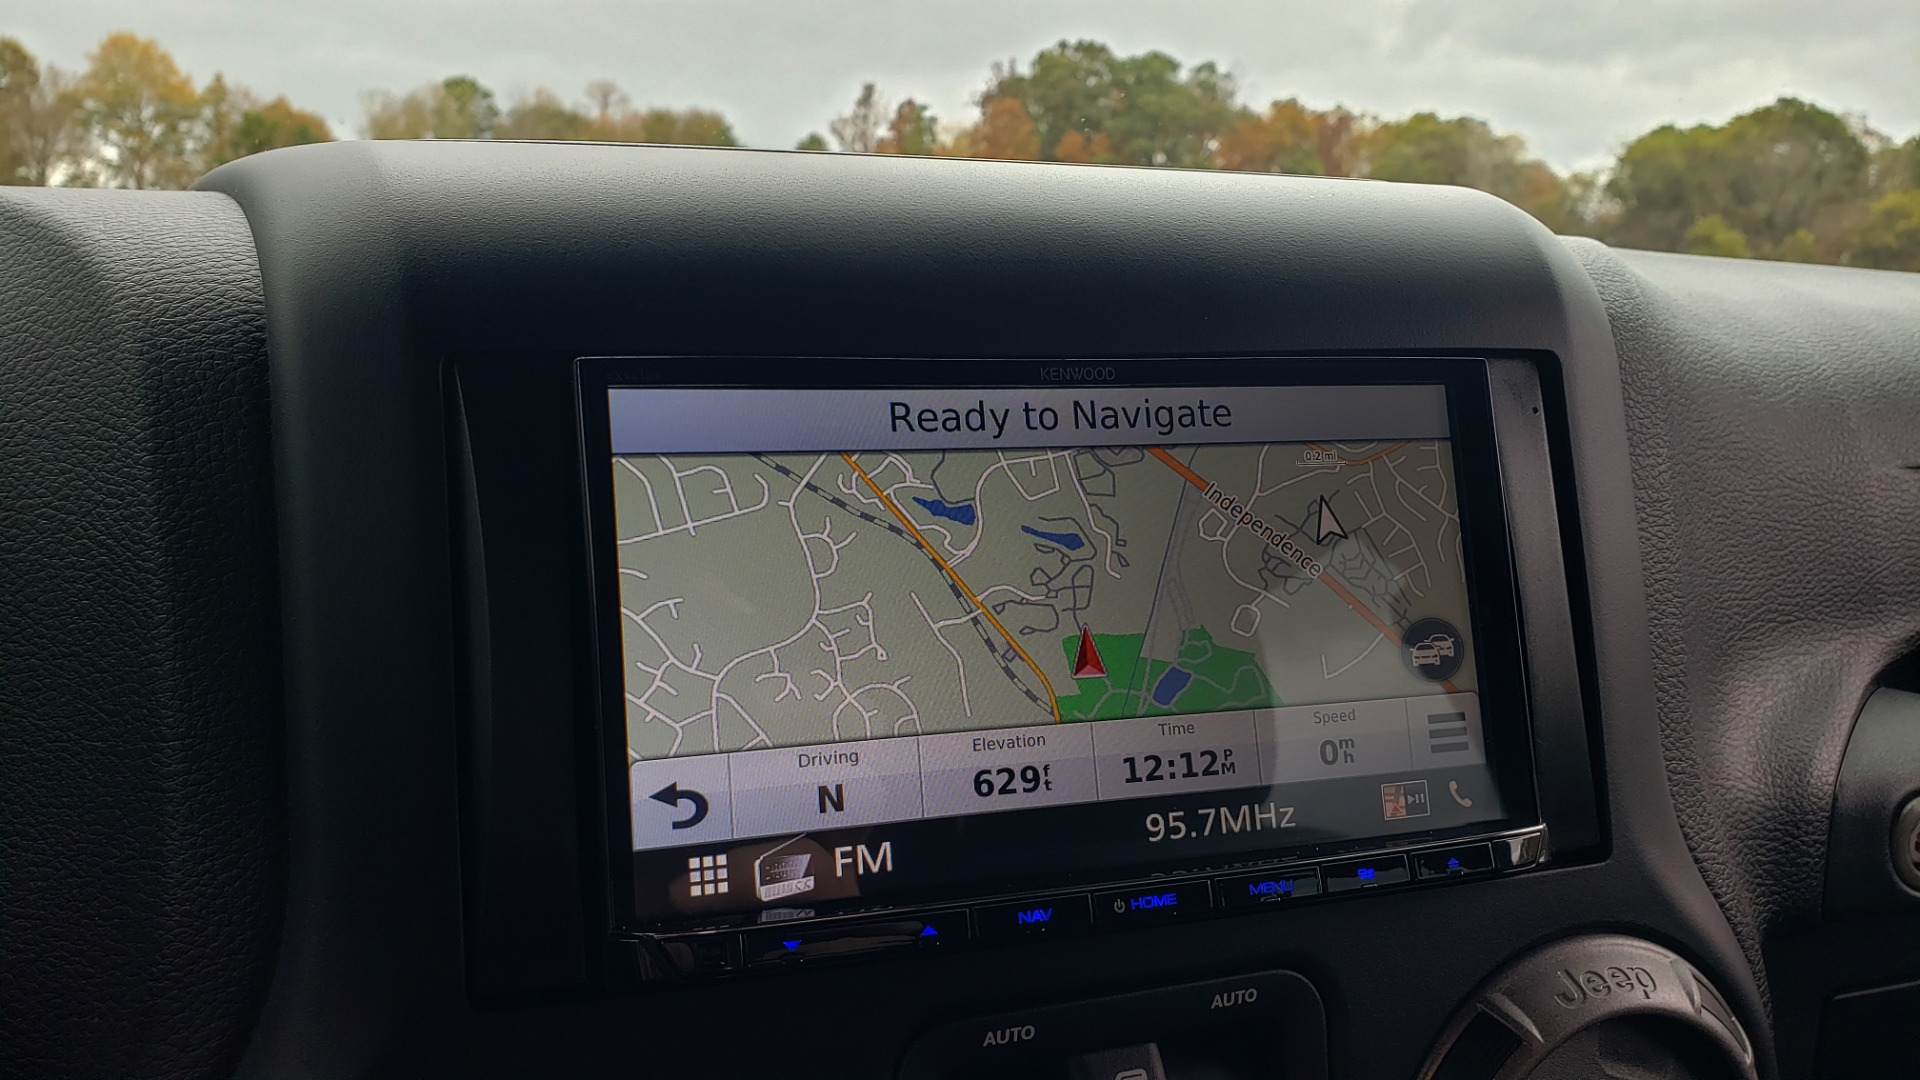 Used 2016 Jeep WRANGLER UNLIMITED SPORT 4X4 / POWER TOP / NAV / HTD STS / REARVIEW for sale $36,999 at Formula Imports in Charlotte NC 28227 90